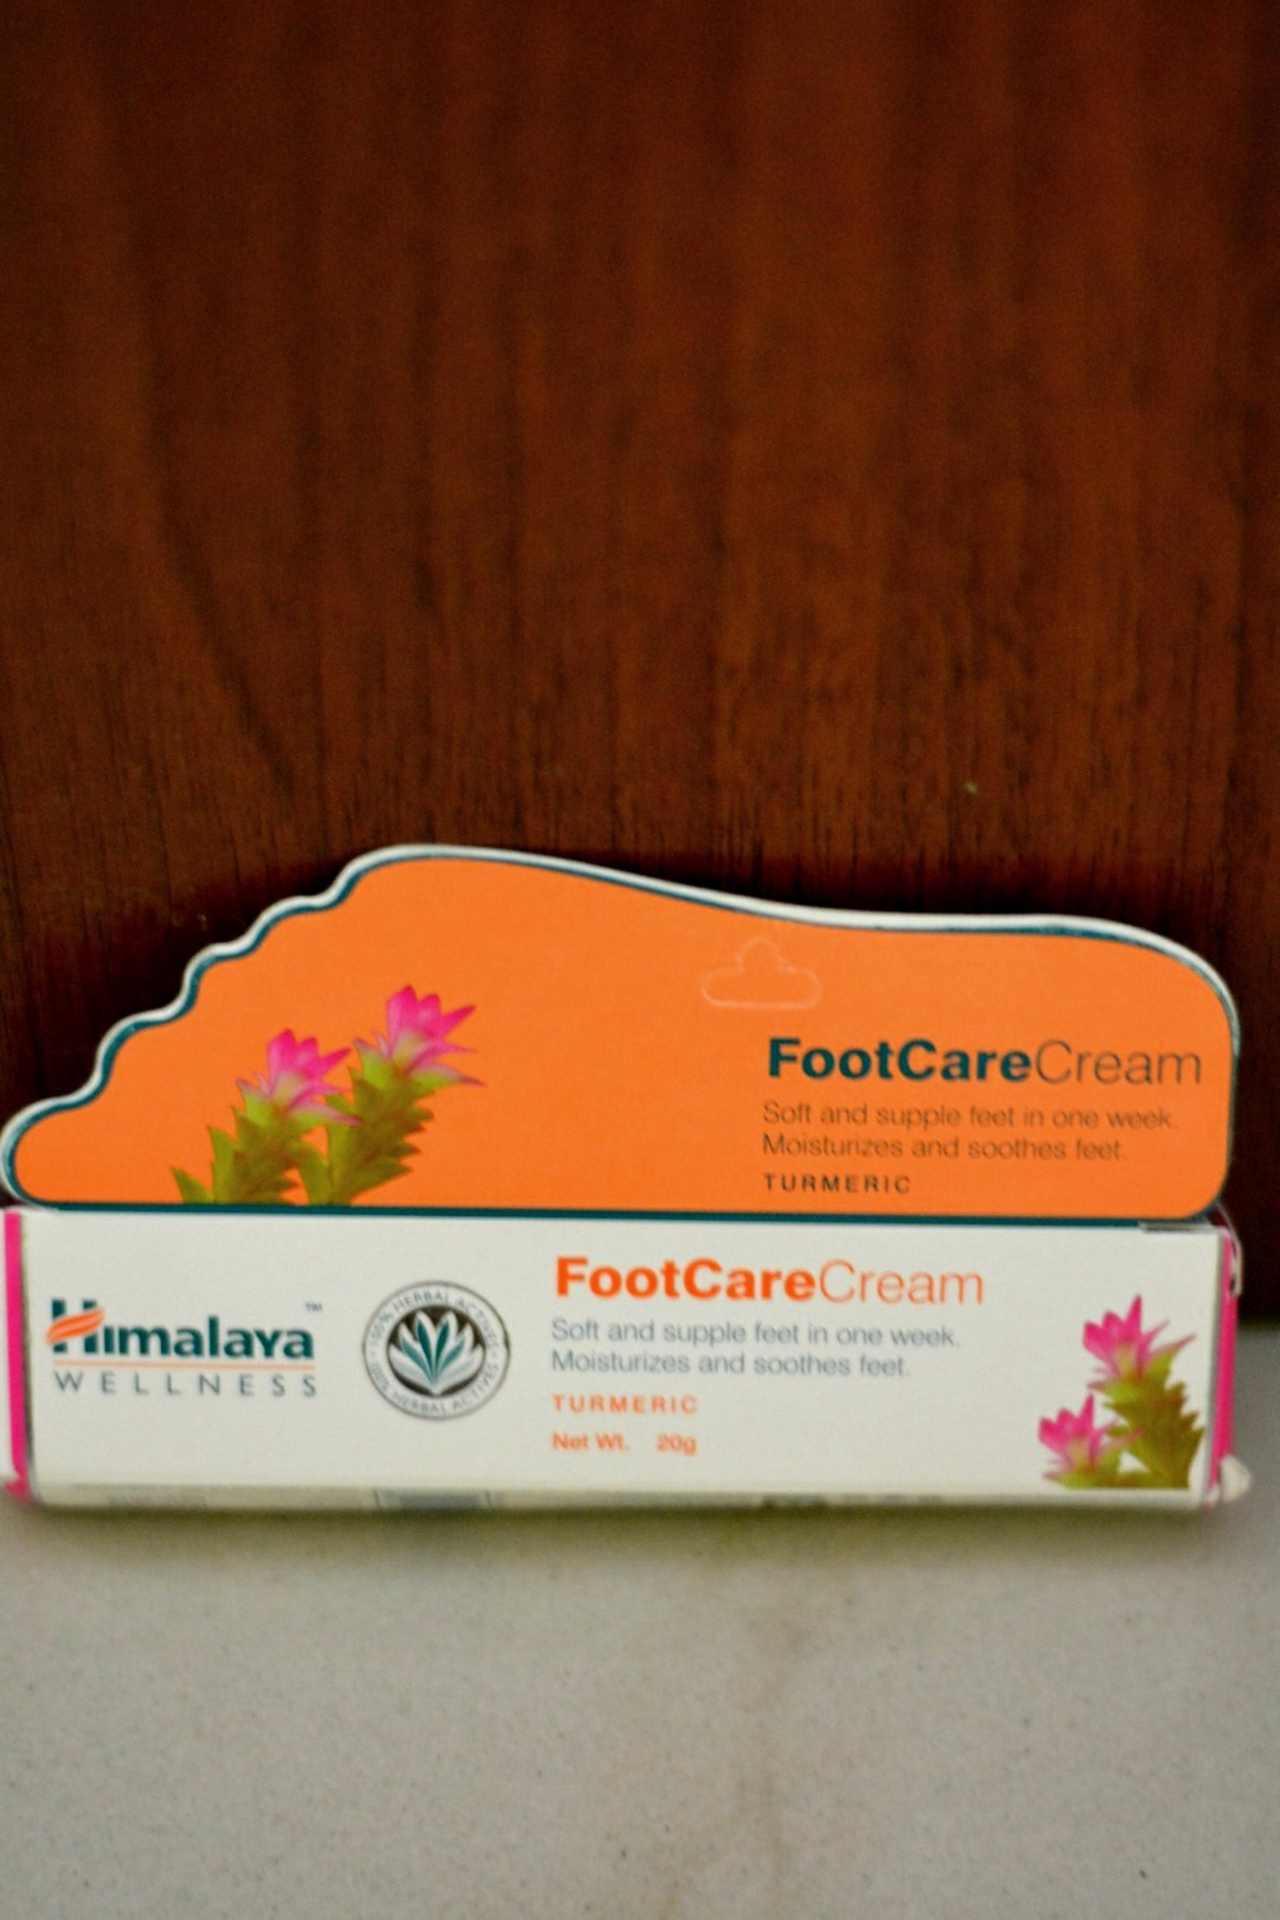 Himalaya wellness FootCare Cream (Review) image